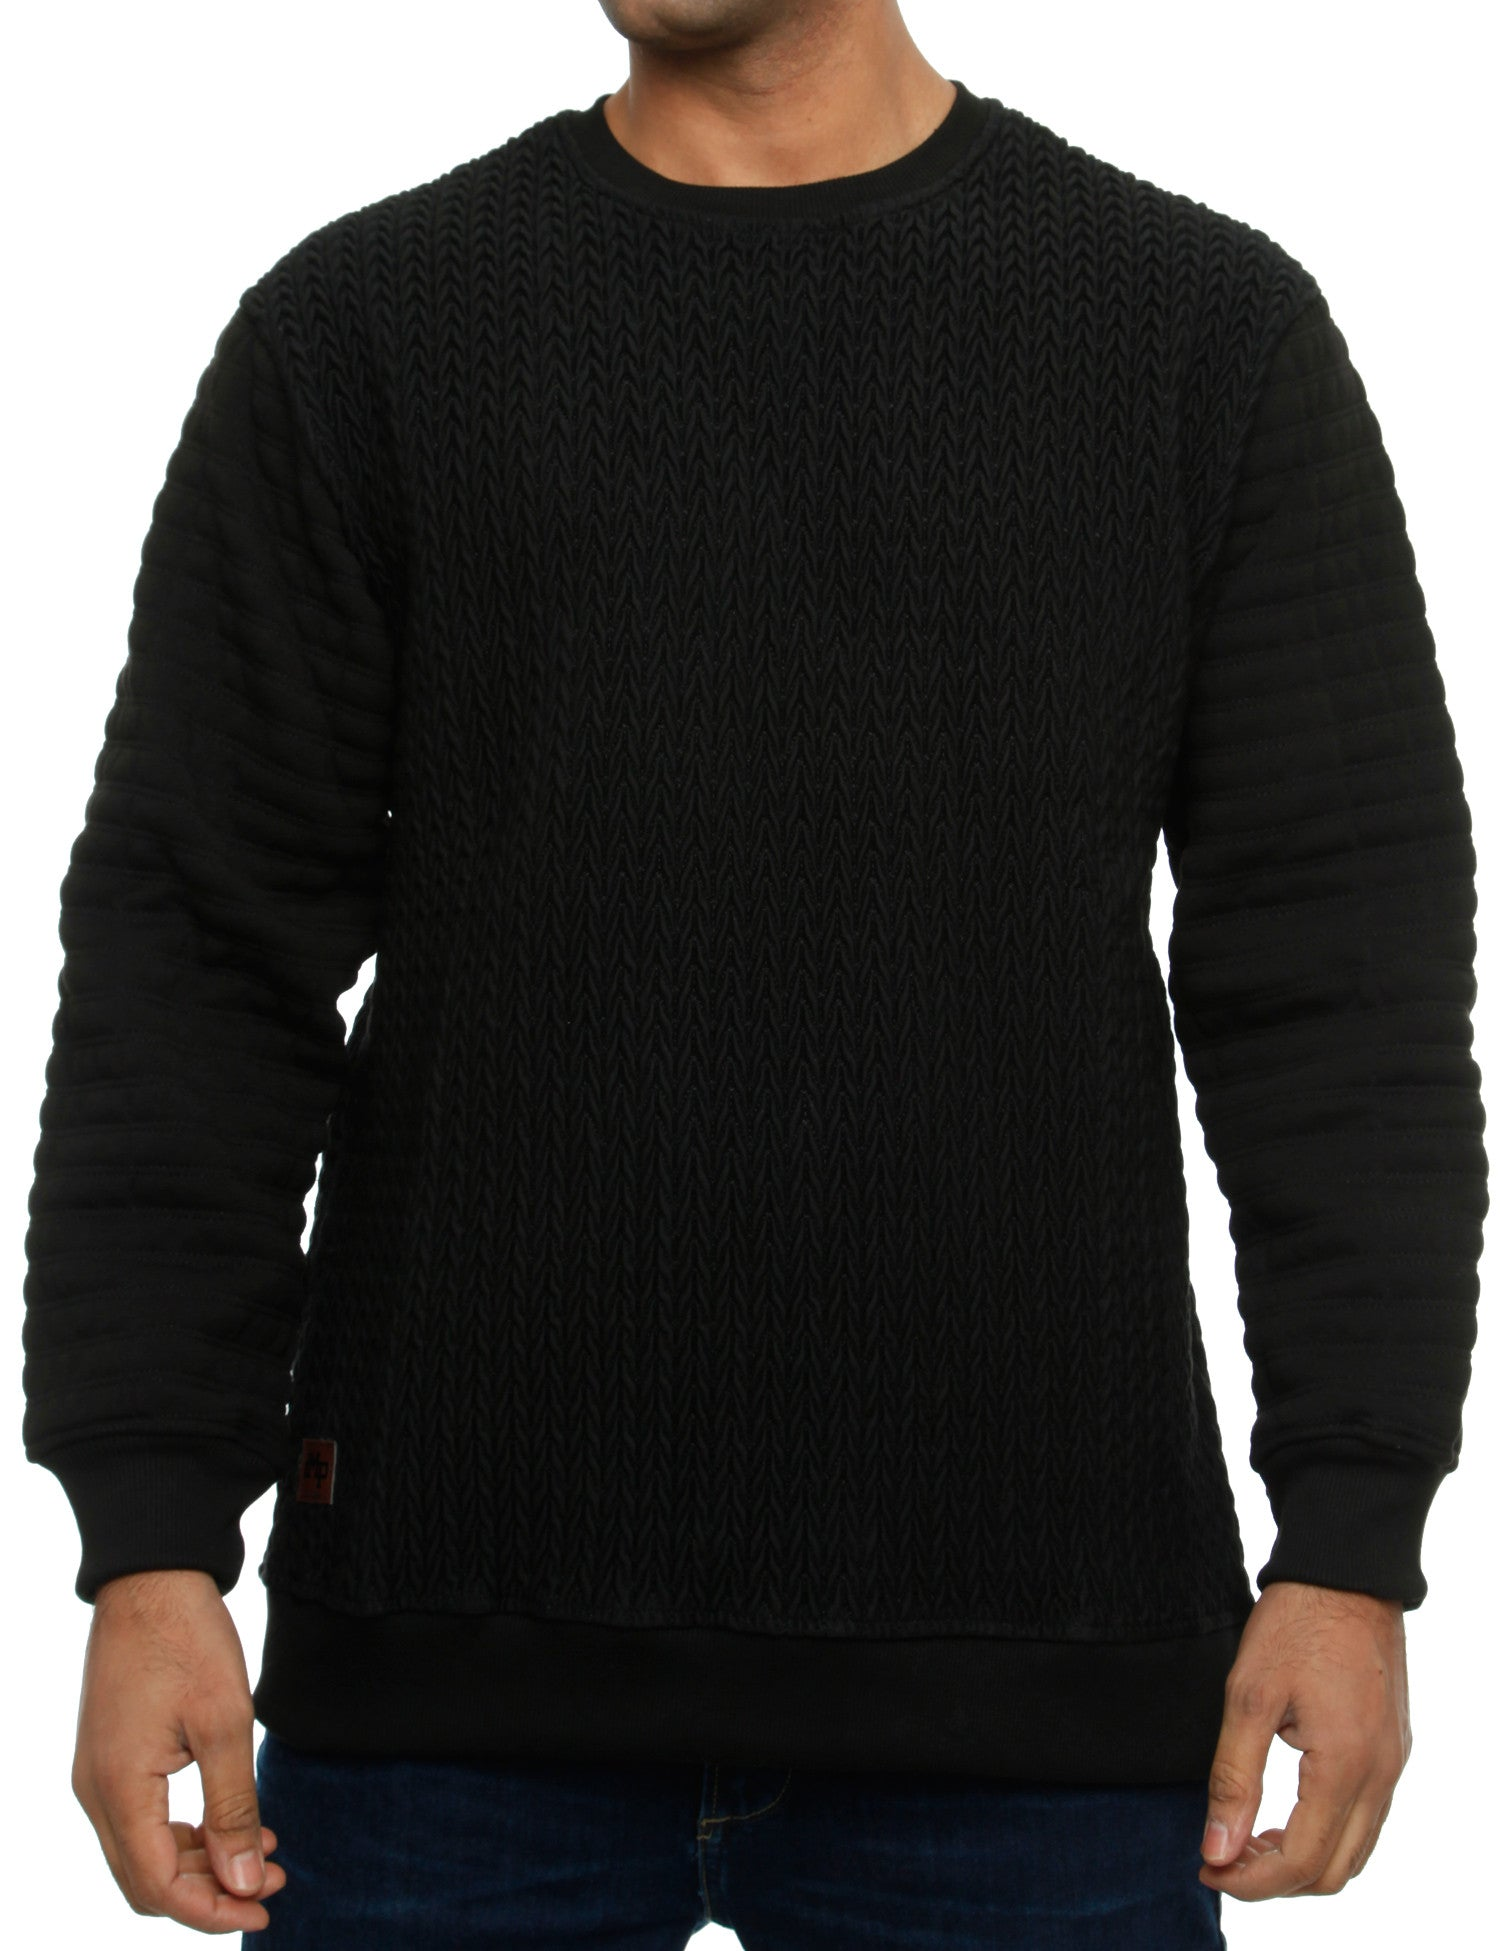 Imperious Sweatshirt CS569 Black